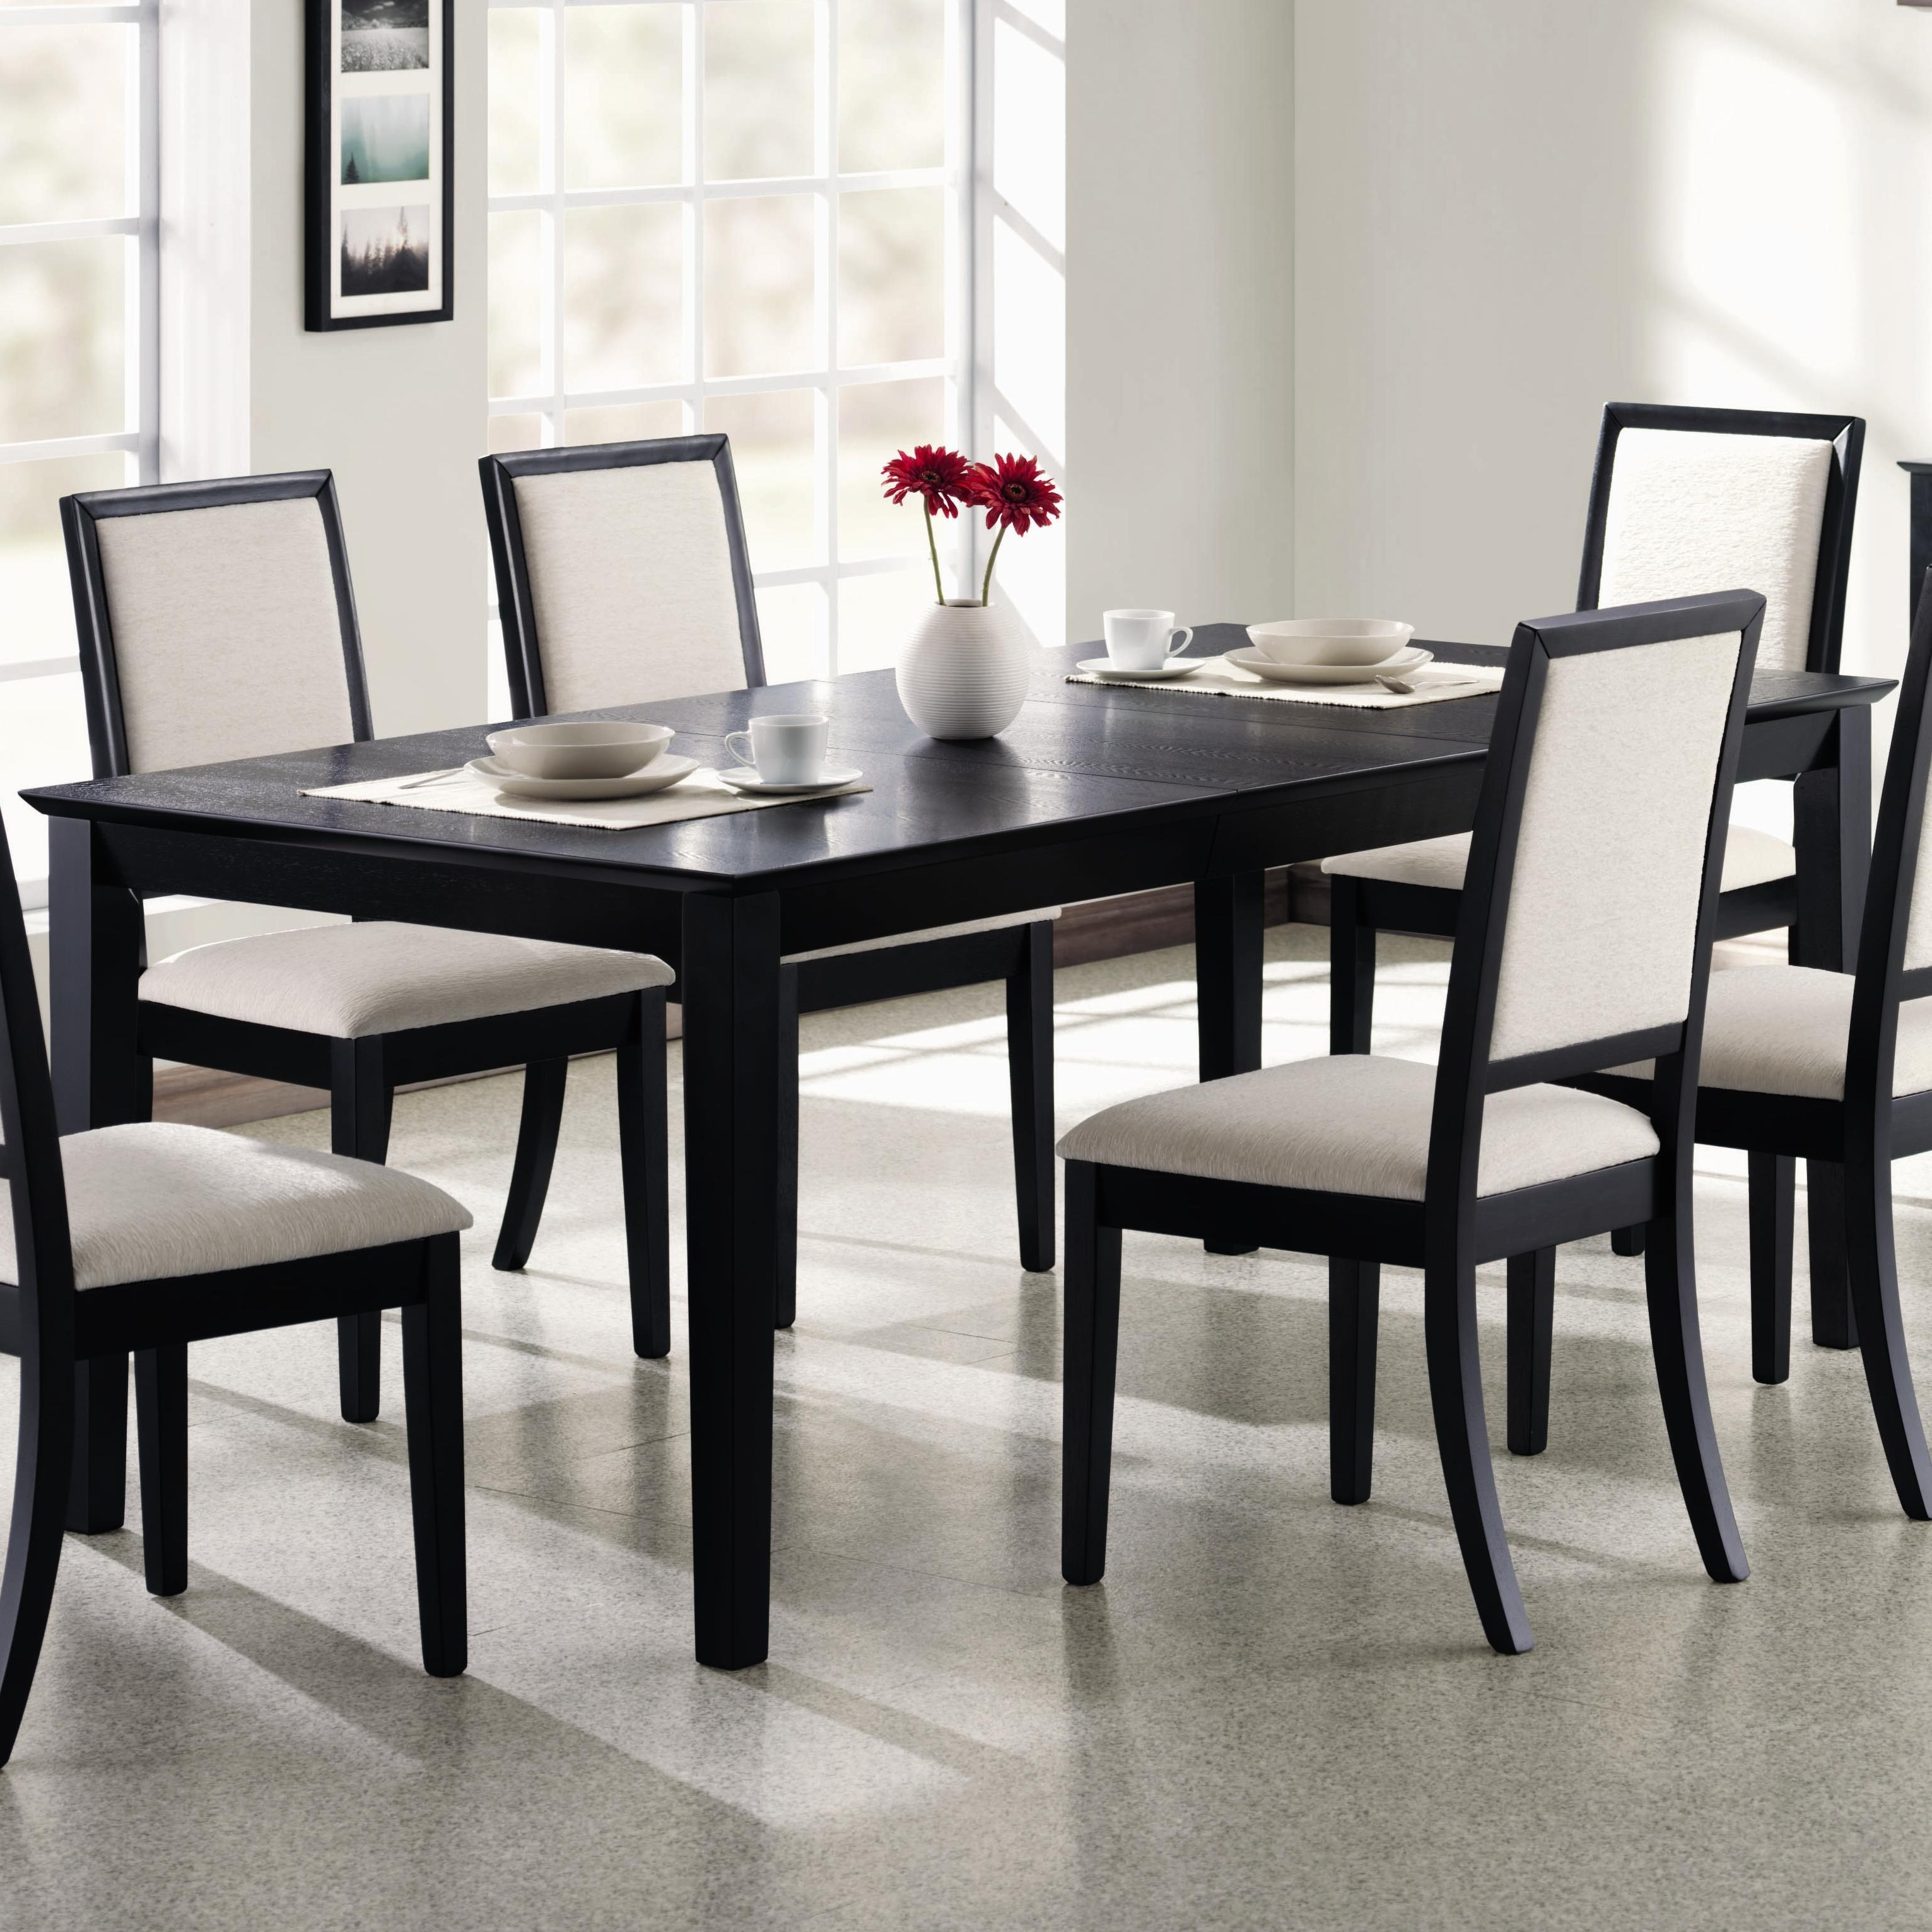 """Best And Newest Coaster Lexton 101561 Rectangular Dining Table With 18"""" Leaf (Gallery 1 of 25)"""